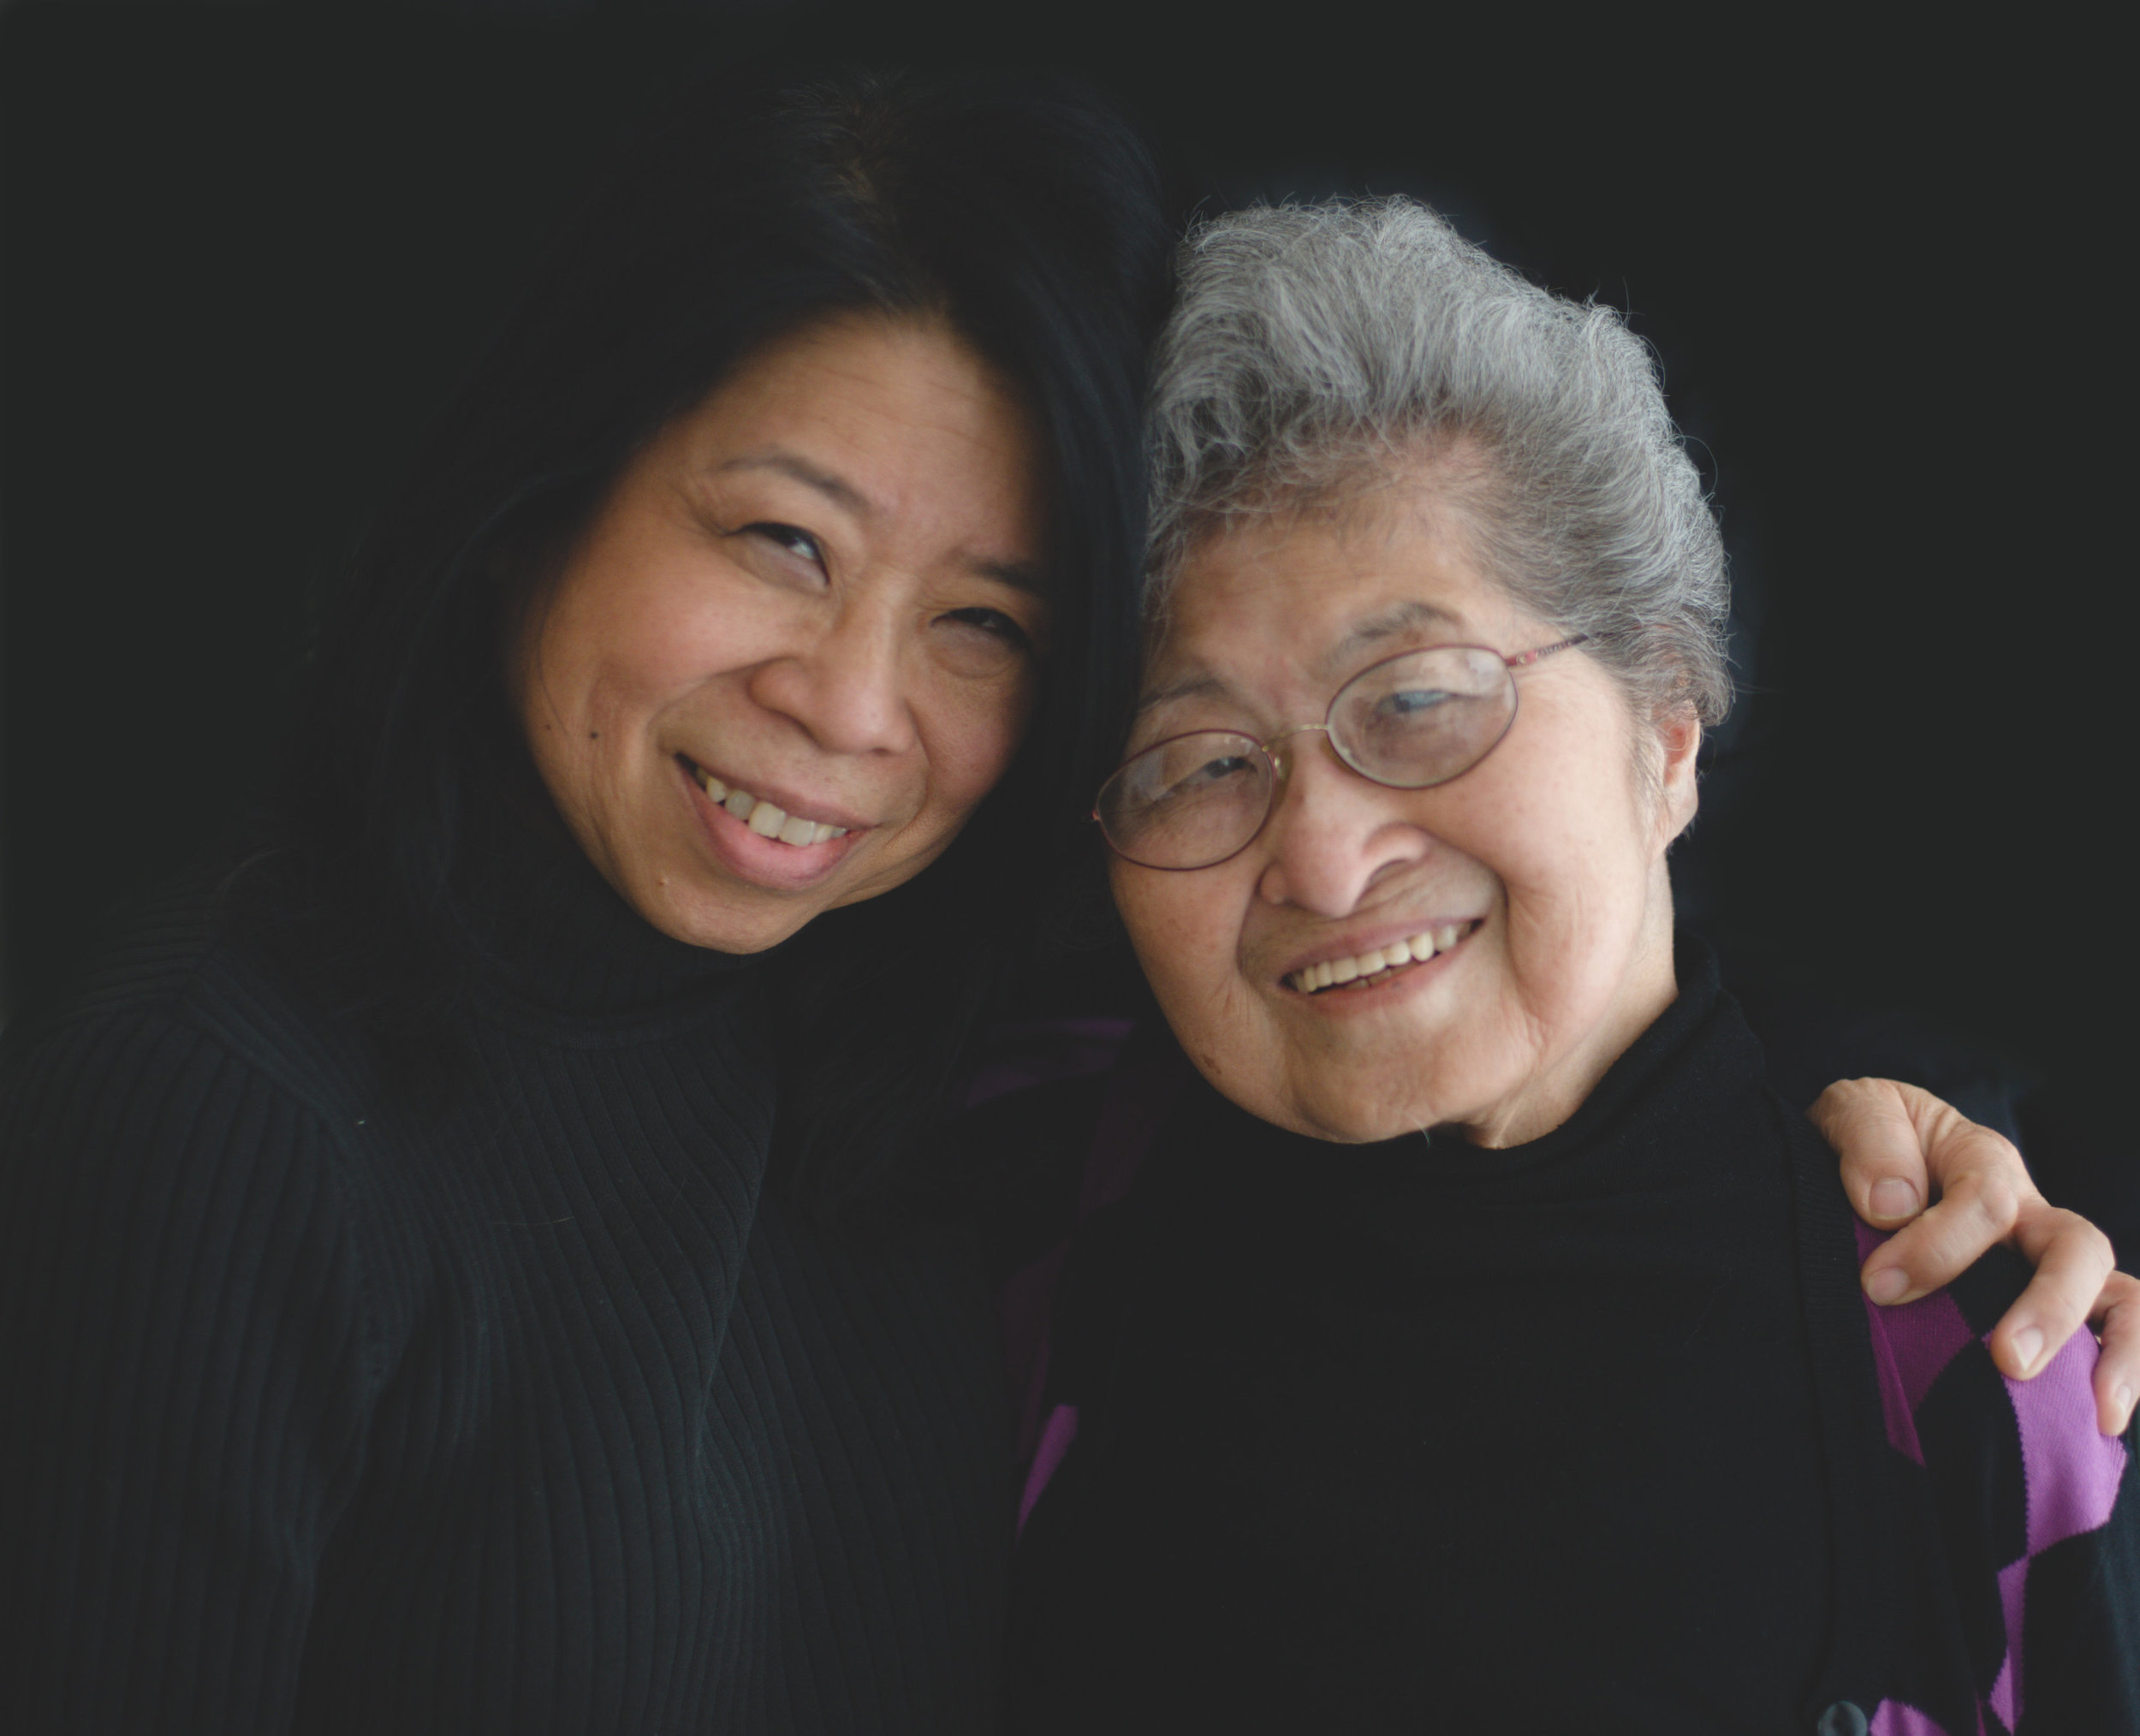 """Elaine and her 91-year-old mother, Fumiko, are close. Elaine says when Fumiko and her parents and siblings were taken from their California home, they first lived in horse stalls at a racetrack. """"And then they were put on trains when the camps were ready. They were put in trains and the shades were drawn so they didn't know where they were going."""" Elaine still wonders what they thought as they rode that train for four days."""